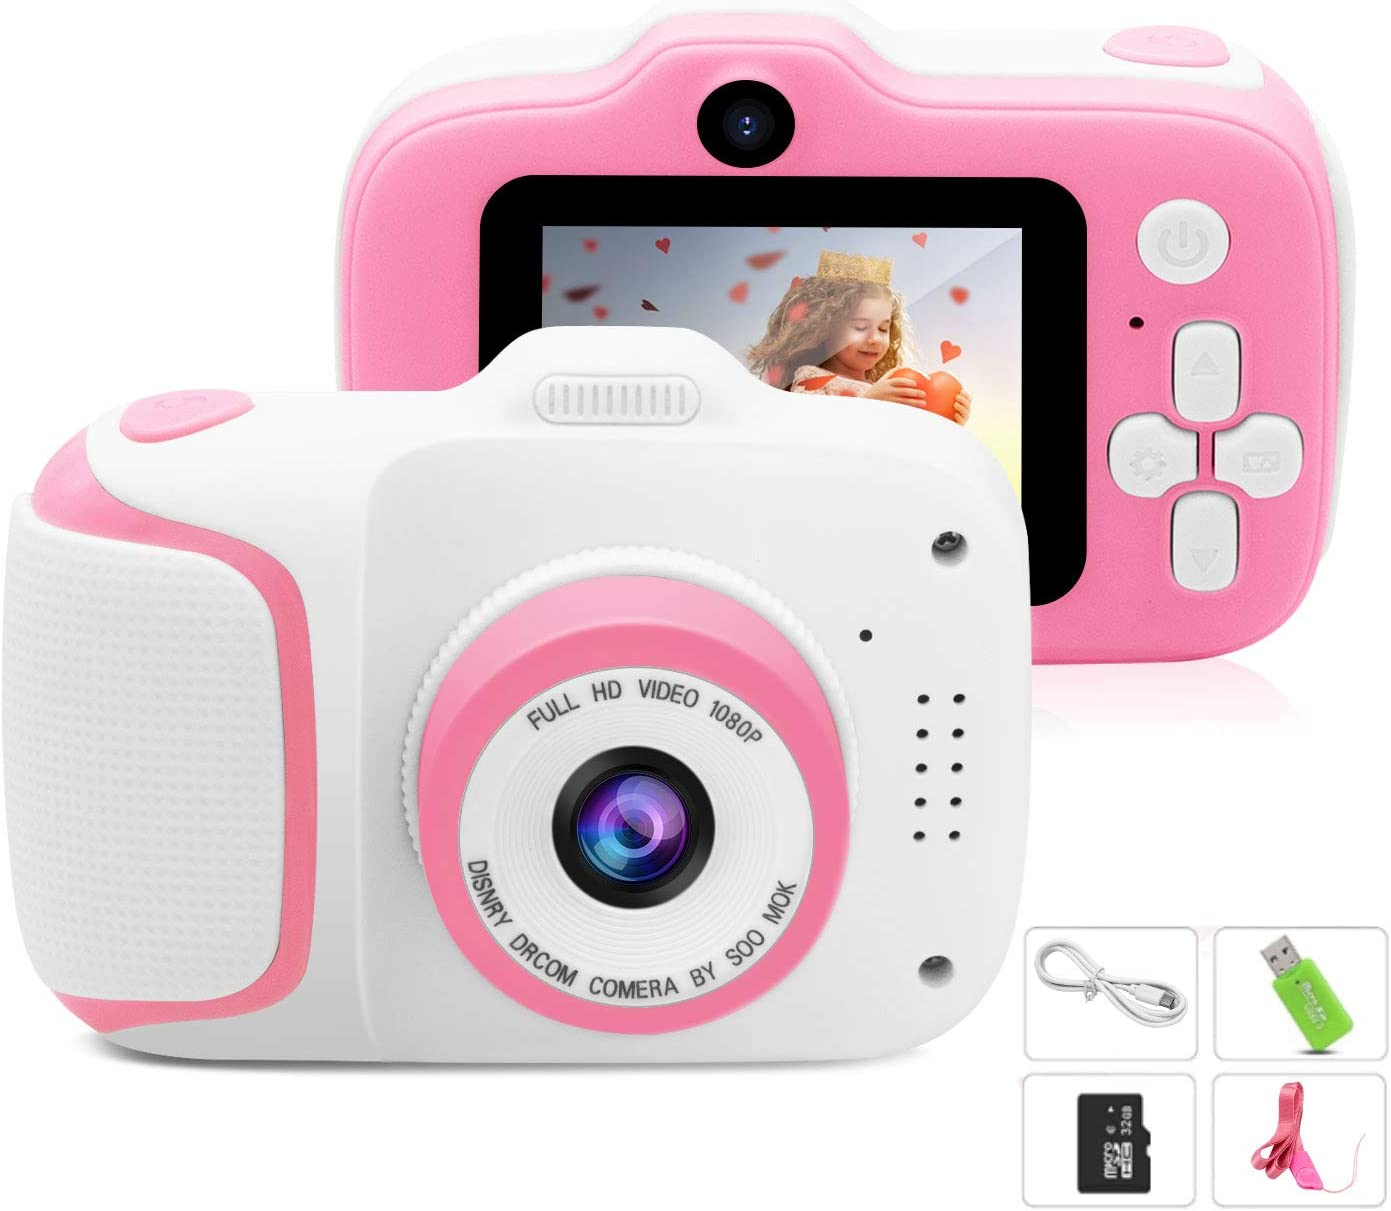 Kids Camera, Best Birthday Gifts for Girls Age 3-9, HD Digital Video Cameras for Toddler, Portable Toy for 3 4 5 6 7 8 9 Year Old Girls with 32GB SD Card-Pink